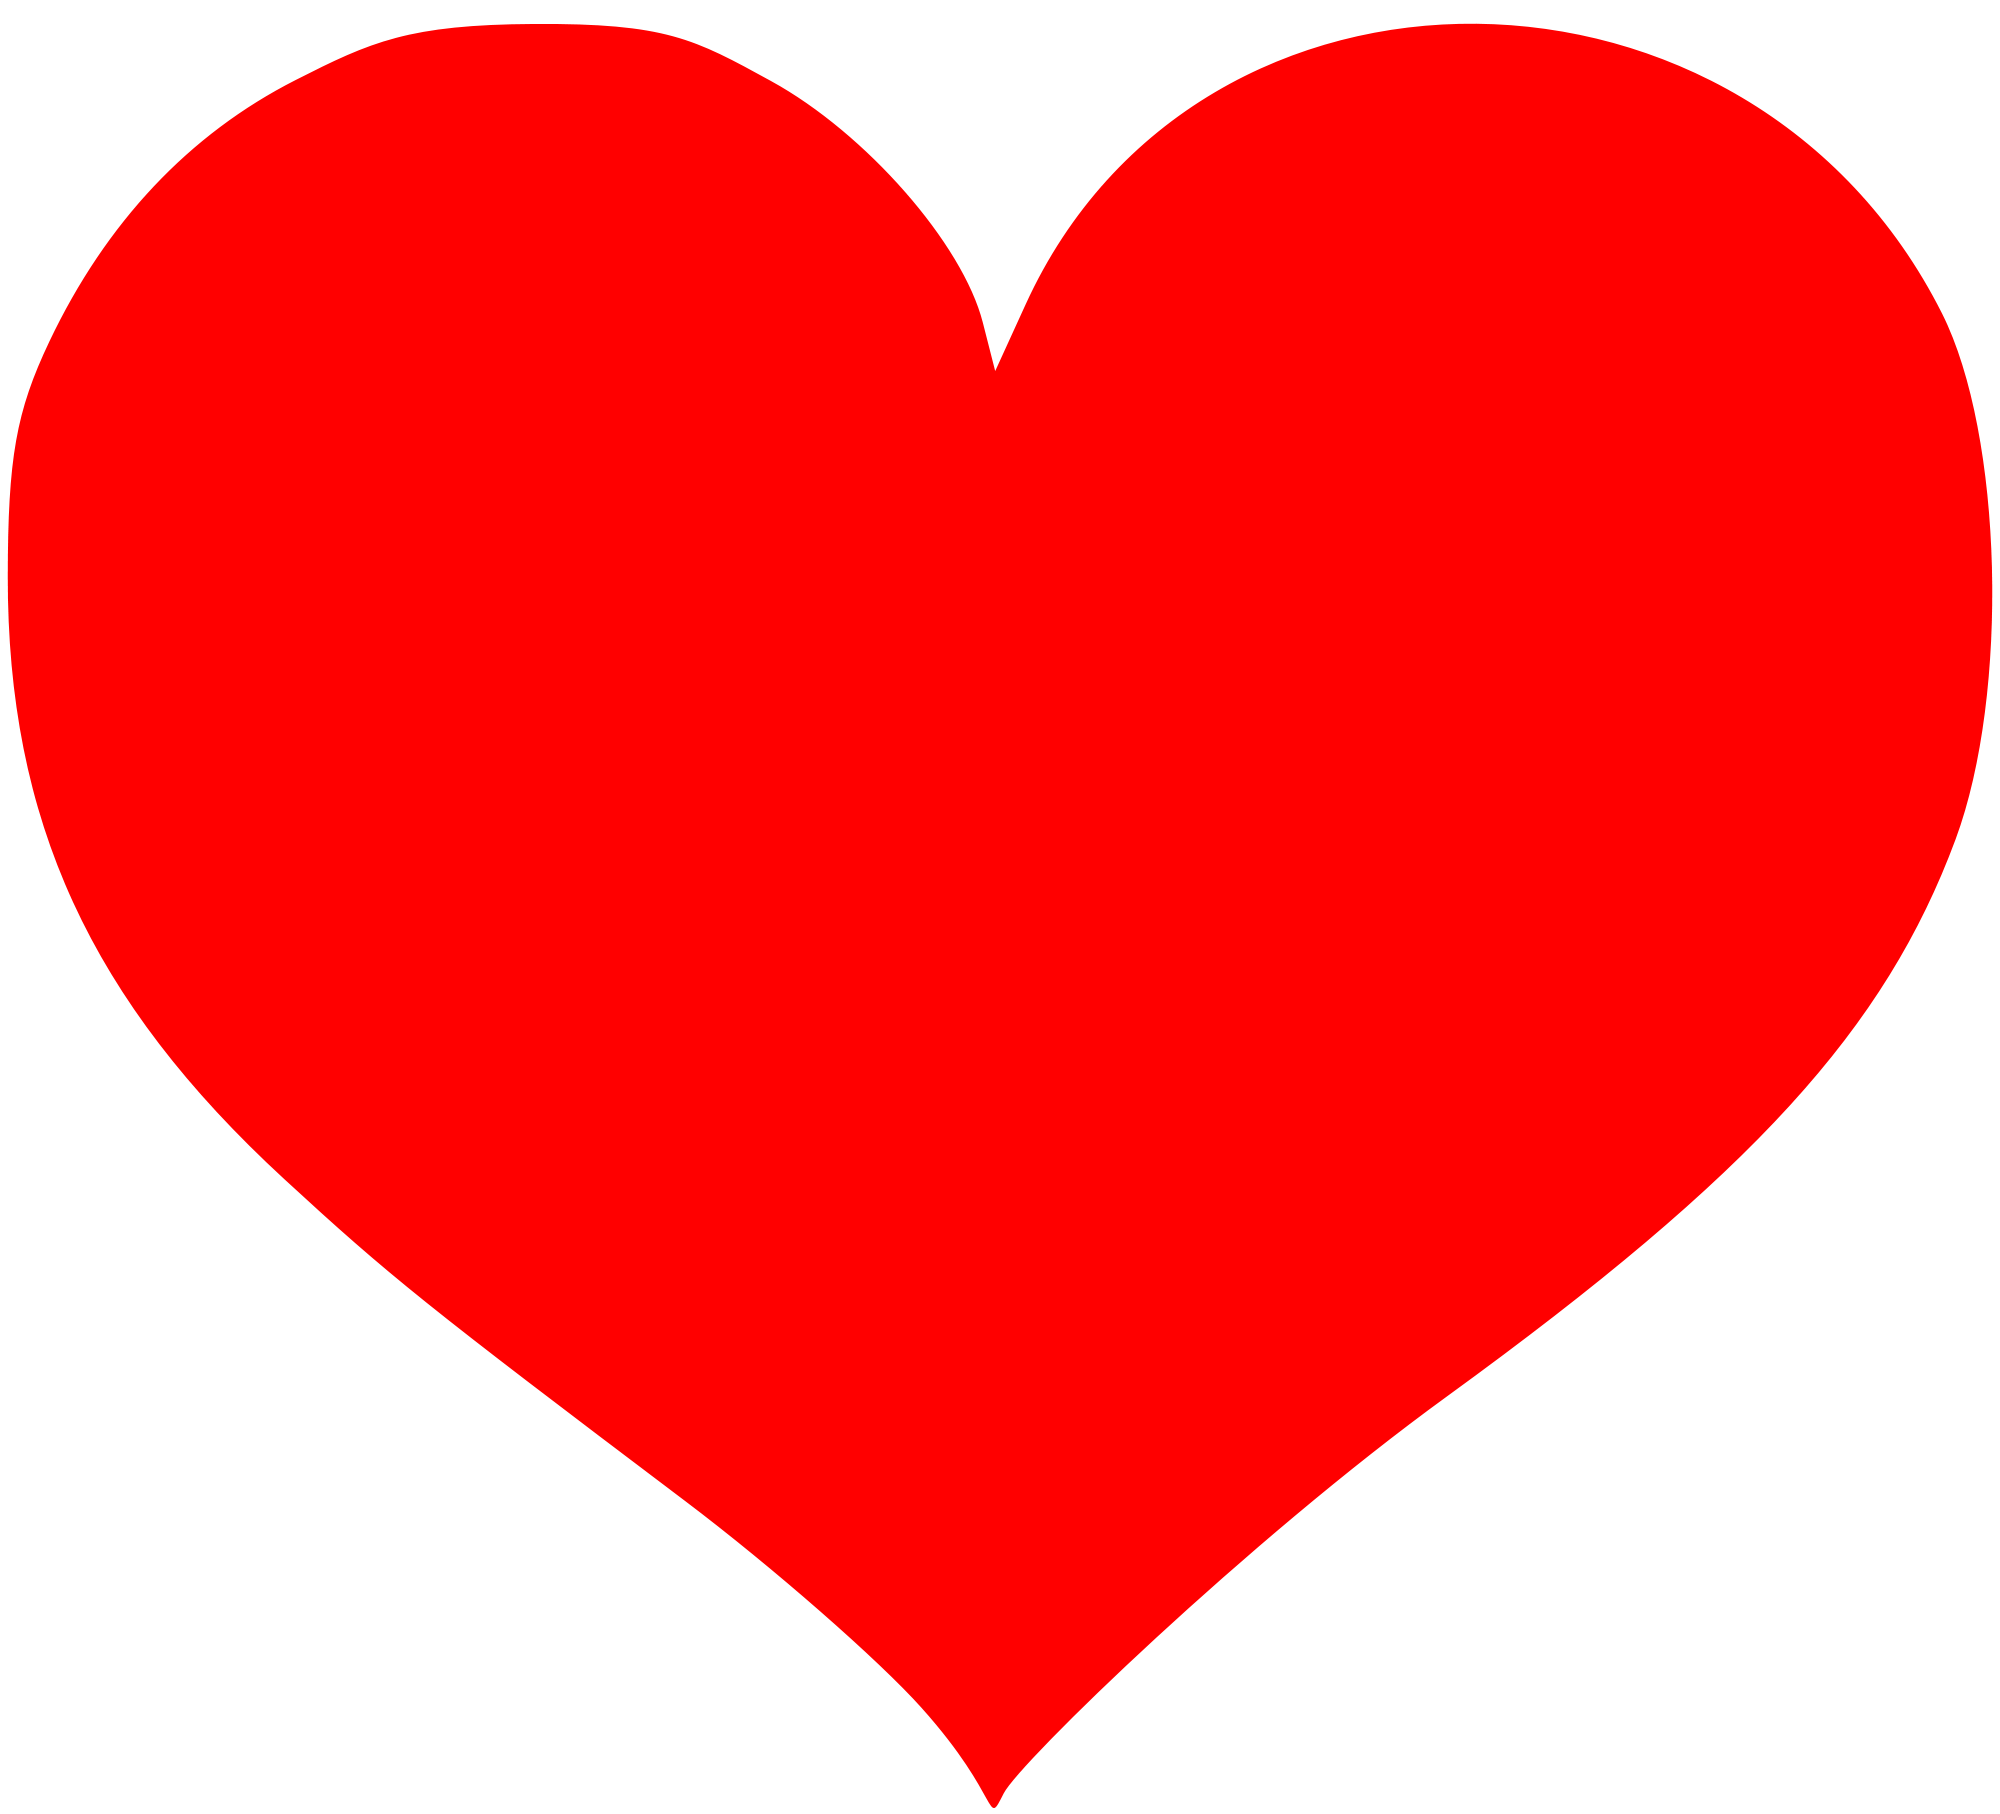 Png red heart. Image transparent best stock